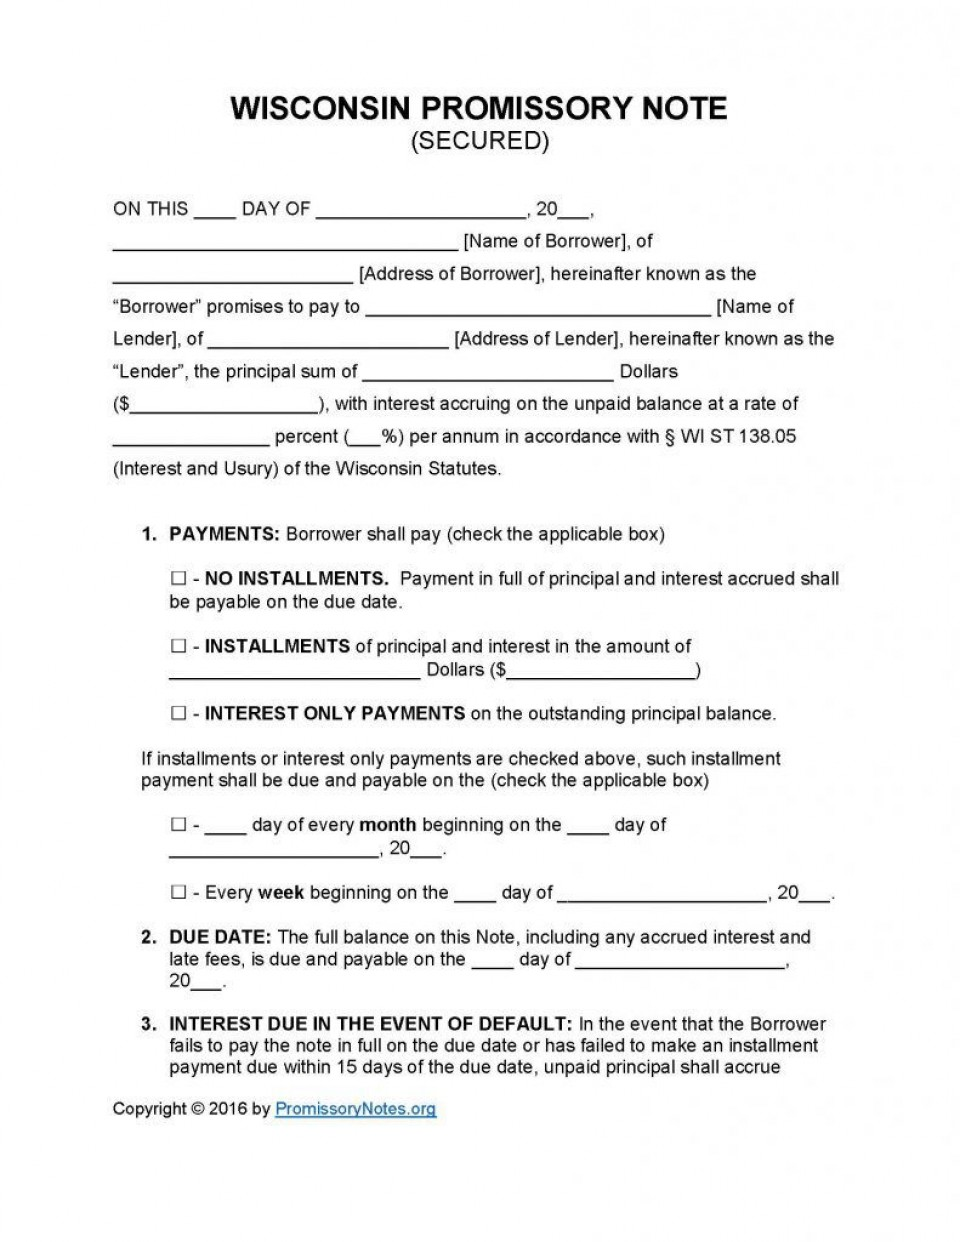 009 Top Template For Promissory Note Design  Free Personal Loan Uk960